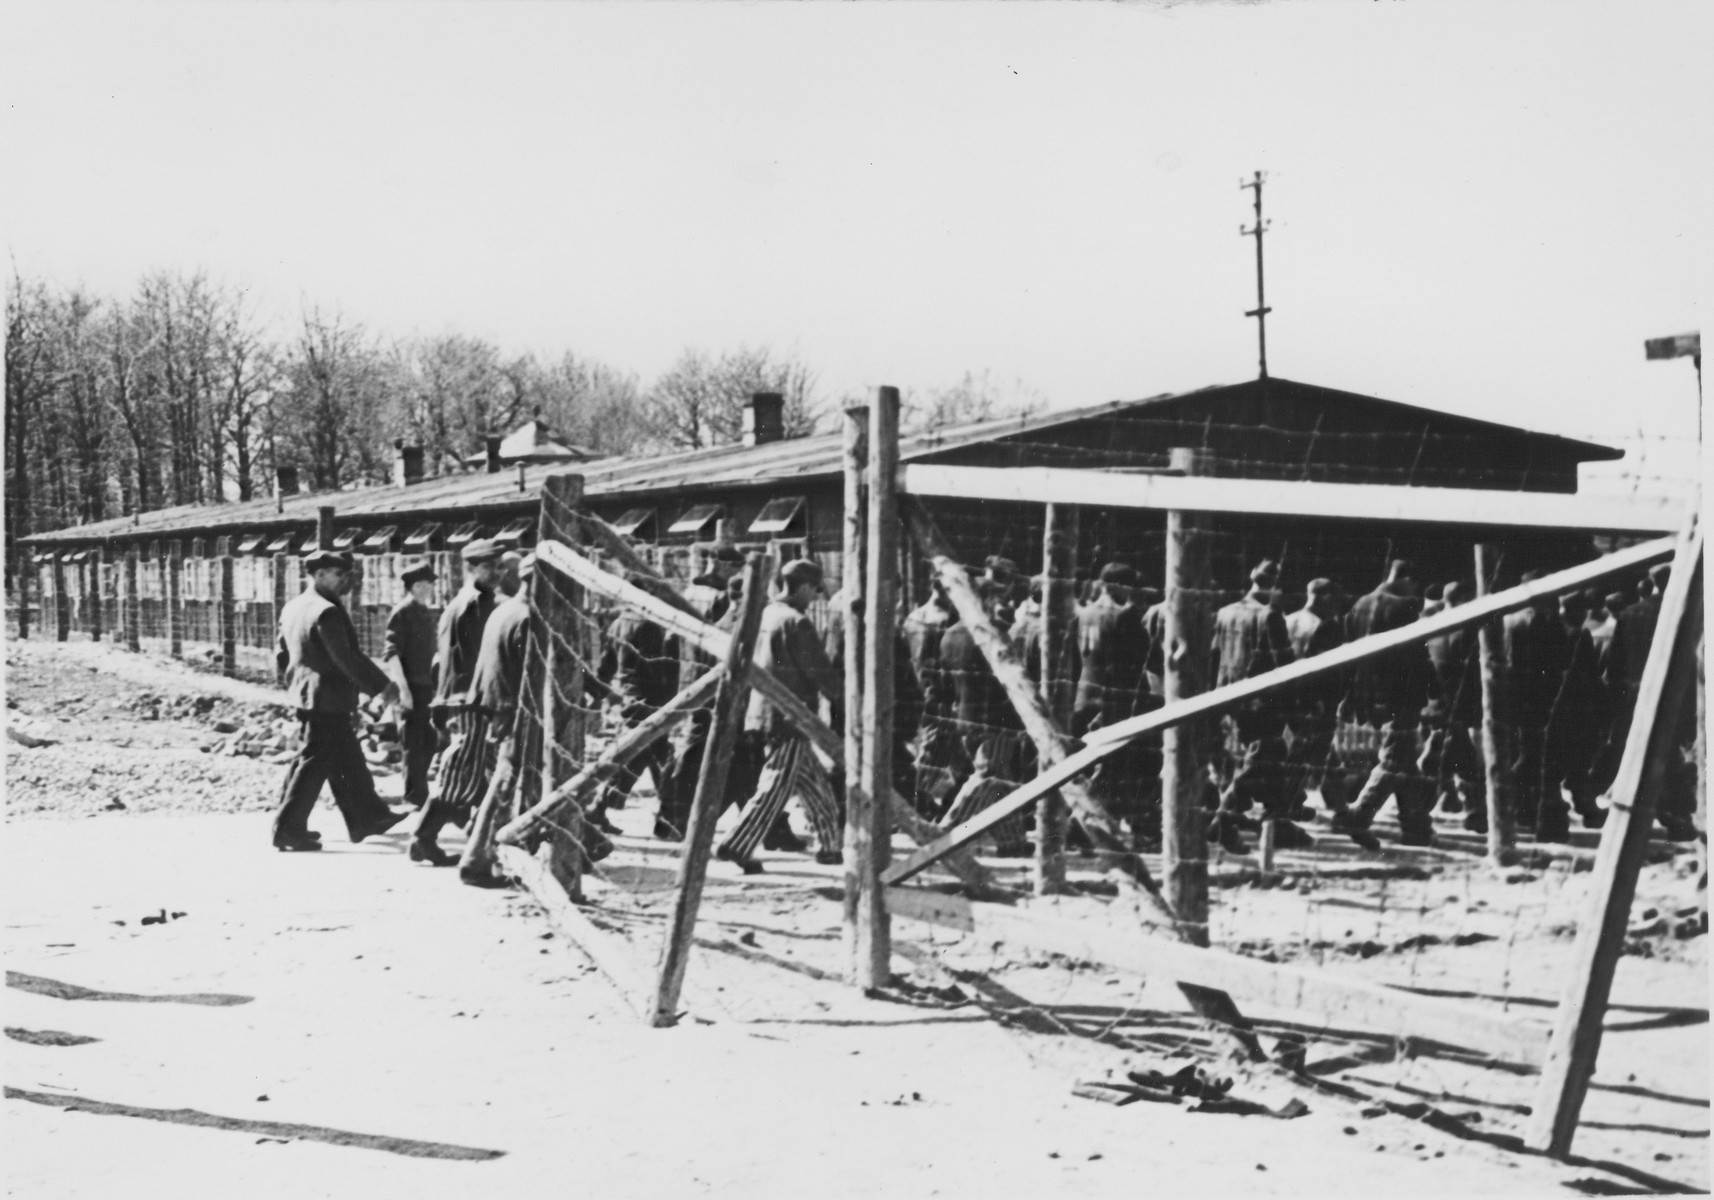 A column of survivors in concentration camp uniform walk through a gate in Buchenwald soon after the liberation.